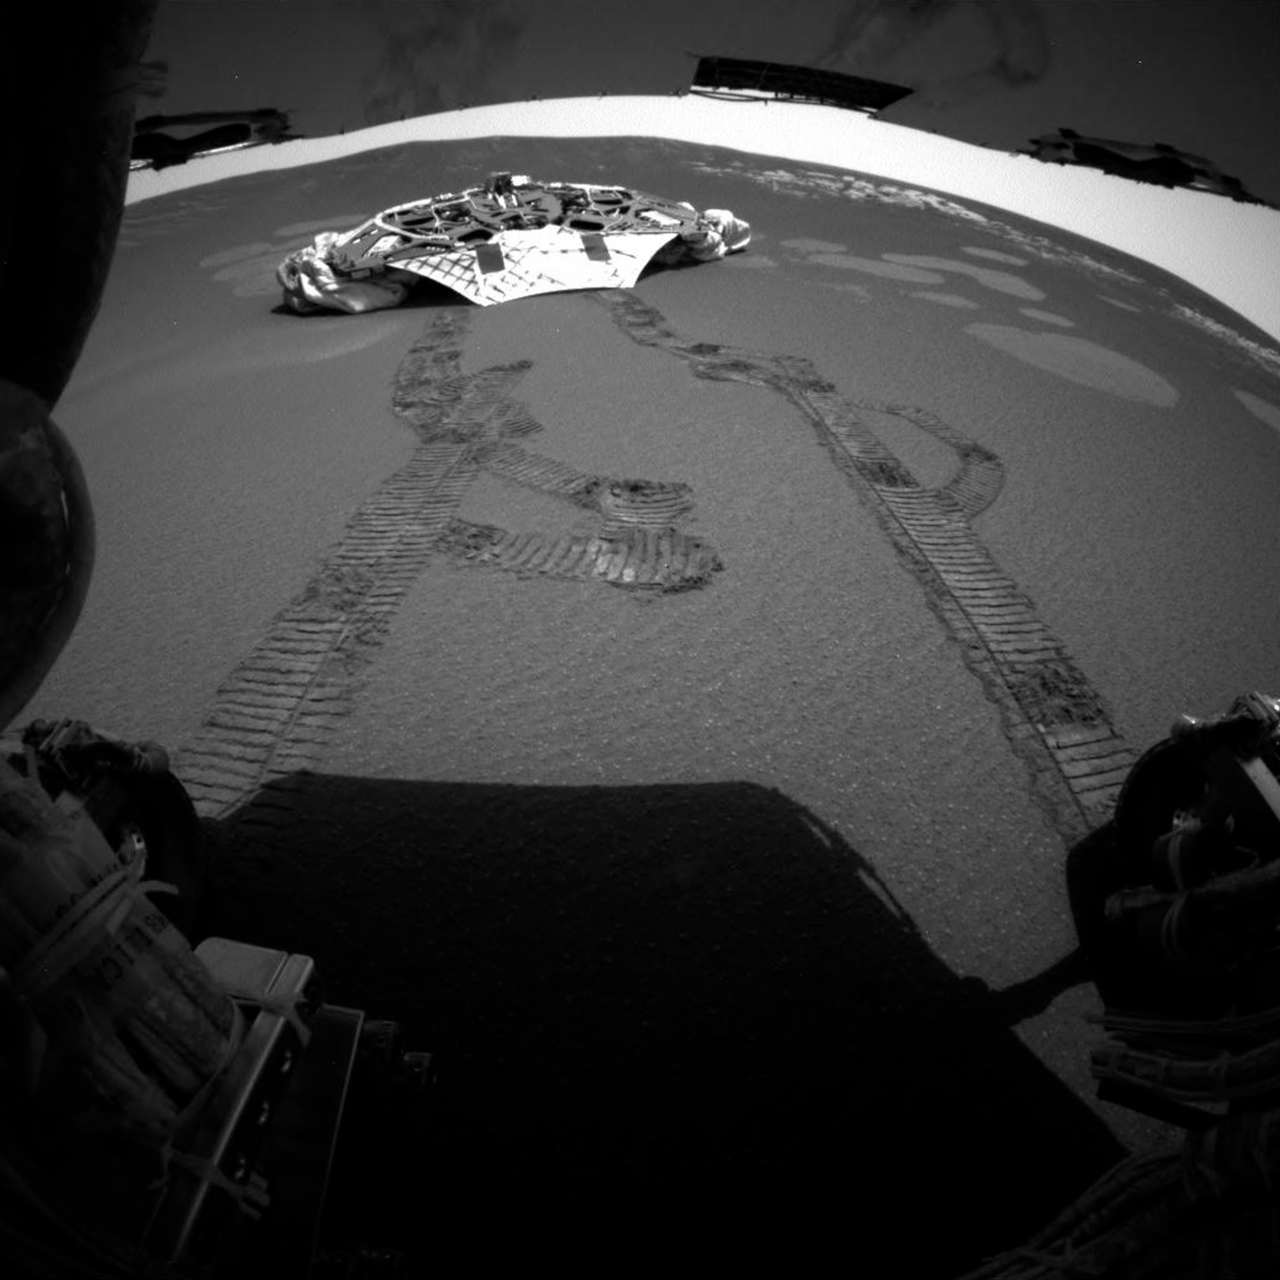 Opportunity now lies dormant in the Perseverance Valley. It is survived by NASA's Curiosity rover, which is now the only active robot on Mars. (Image: AP)